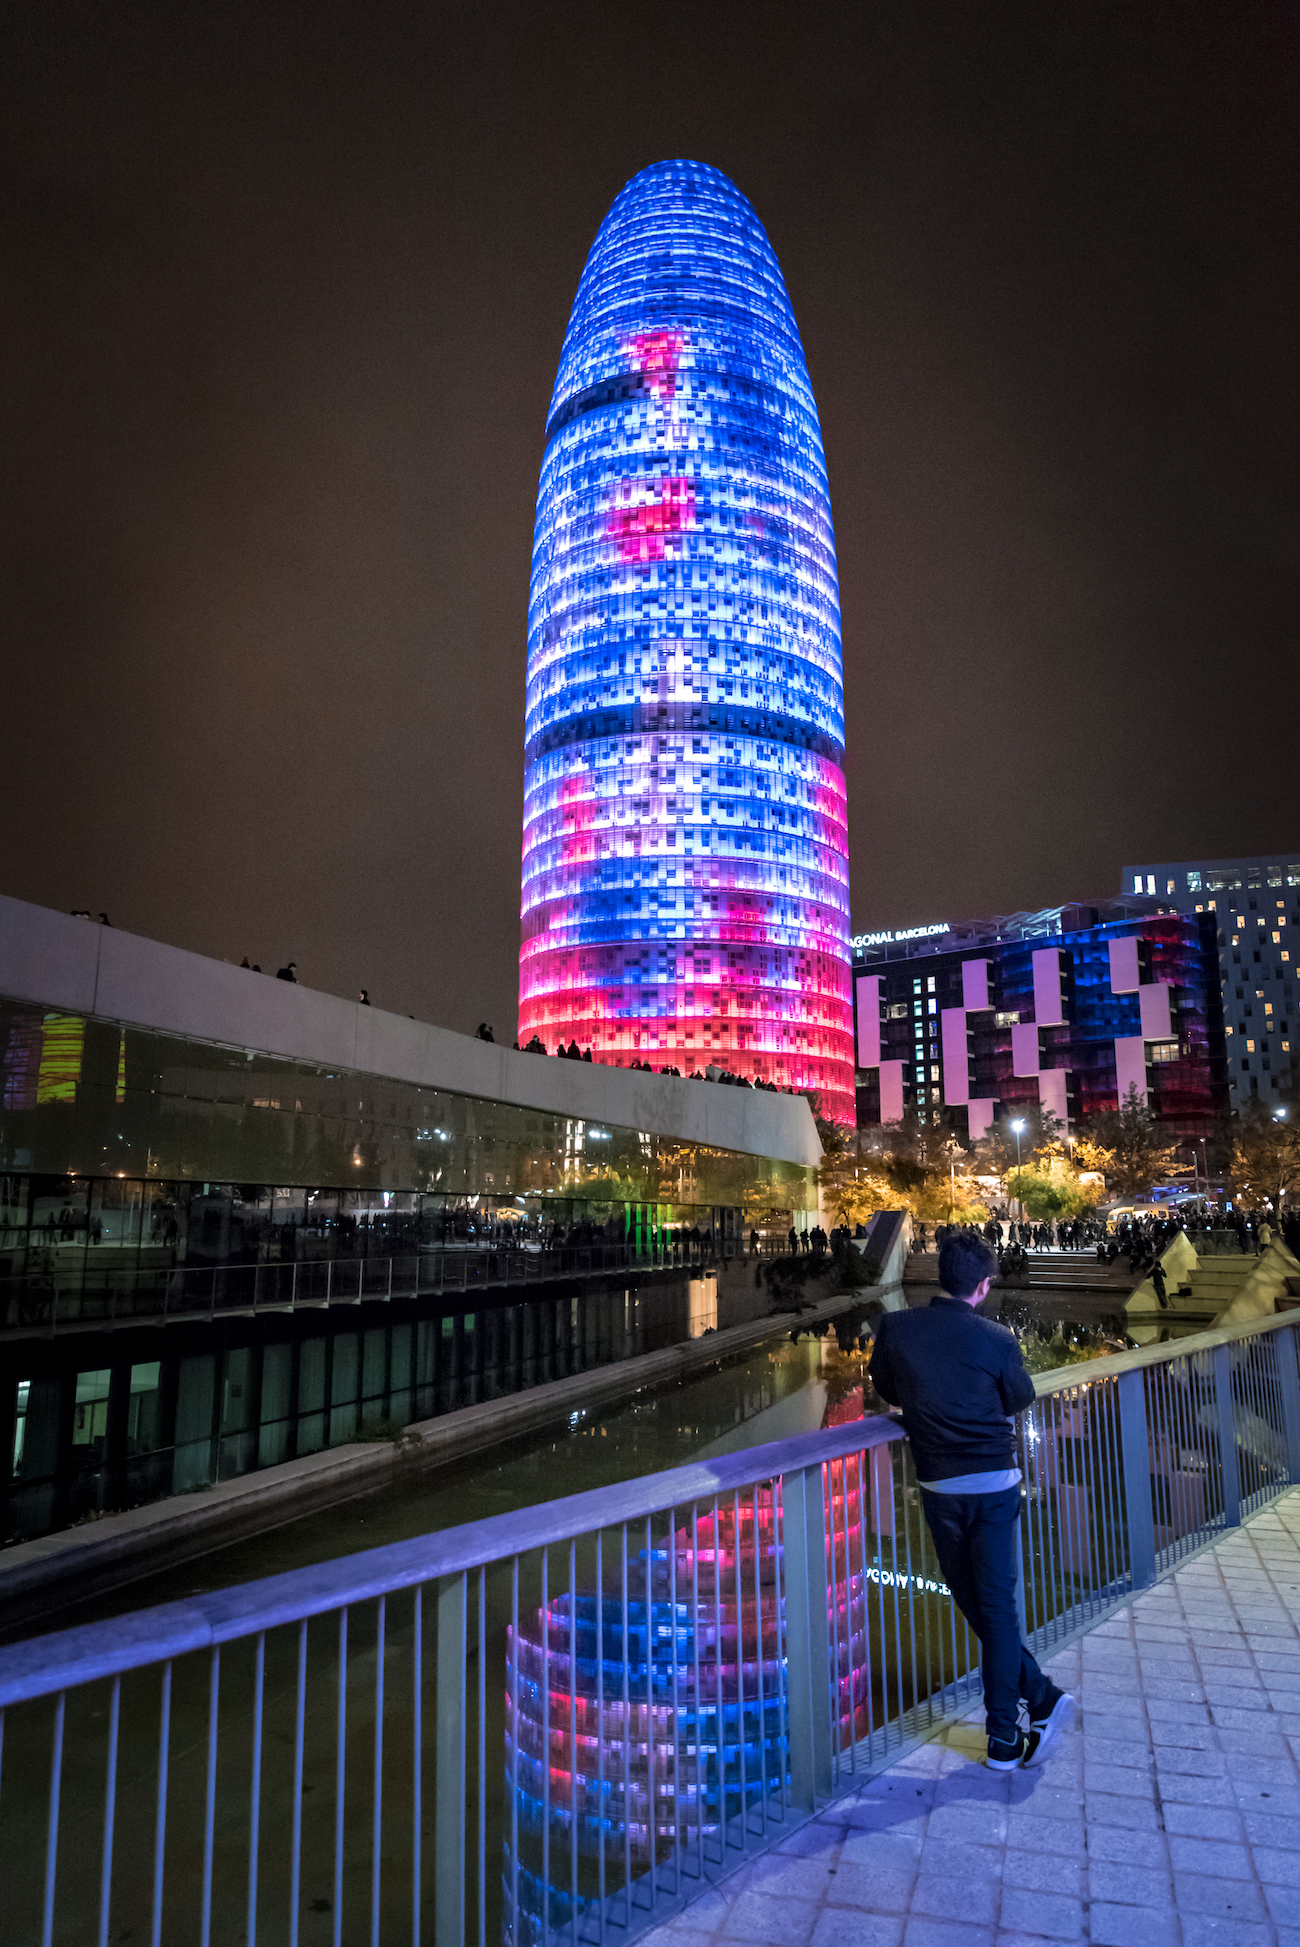 Torre Agbar/Glores Building in Barcelona Illuminated during the Llum light show